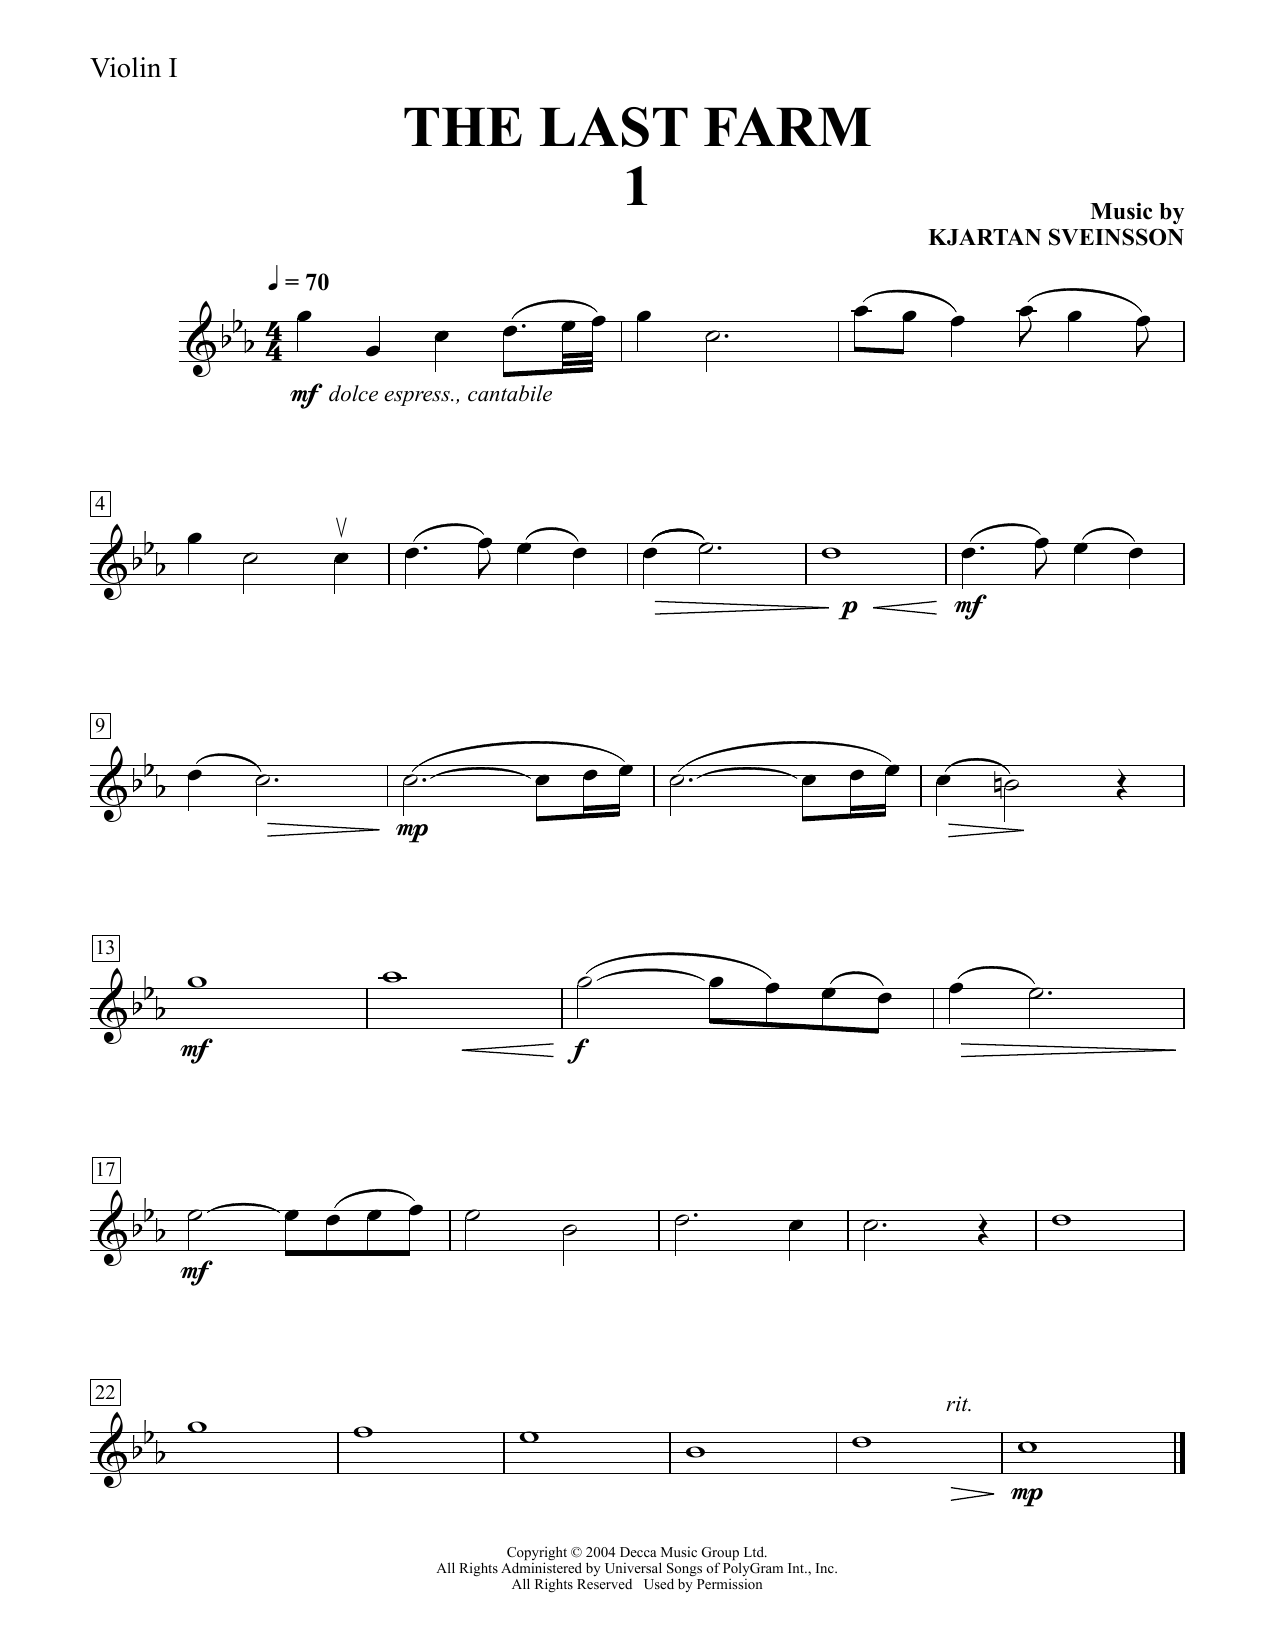 Five String Quartets from The Last Farm - Violin 1 Sheet Music